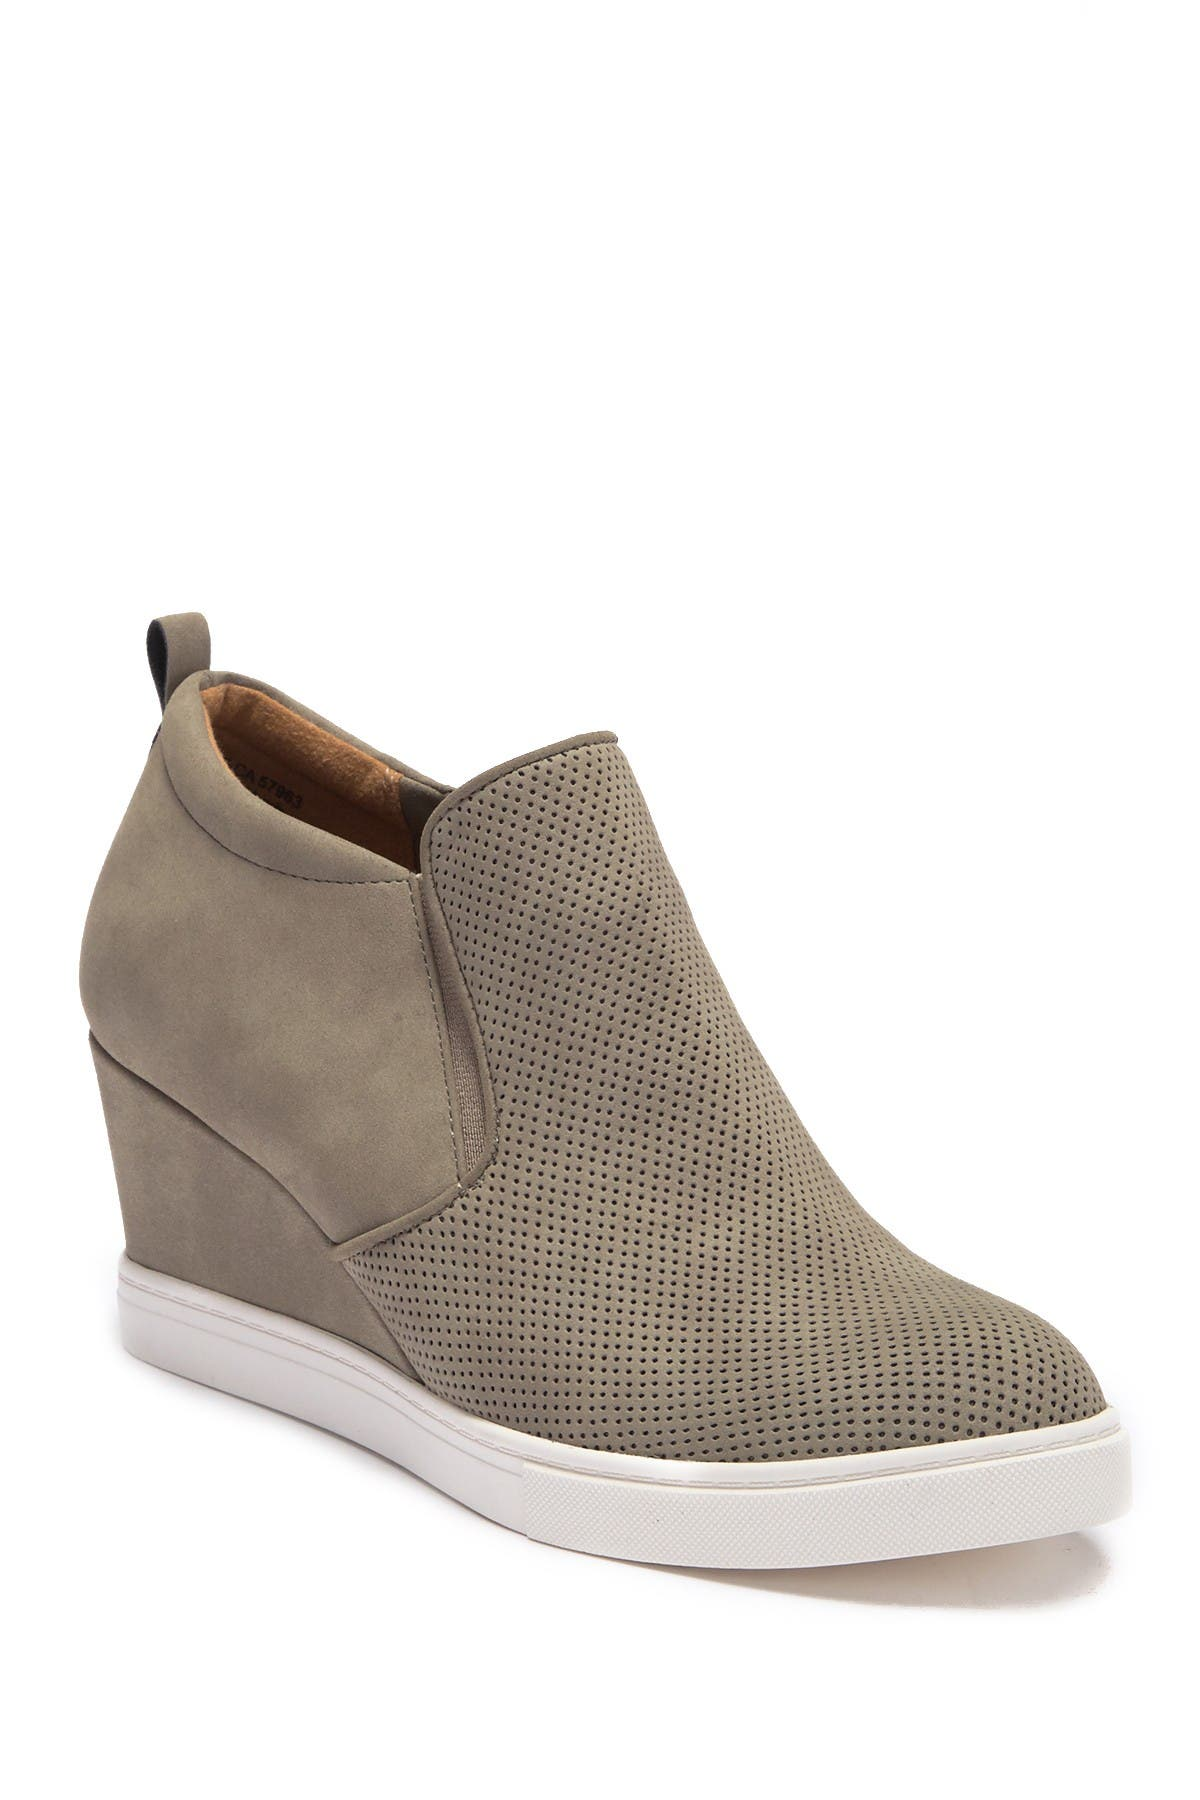 Image of SUSINA Areya Wedge Sneaker